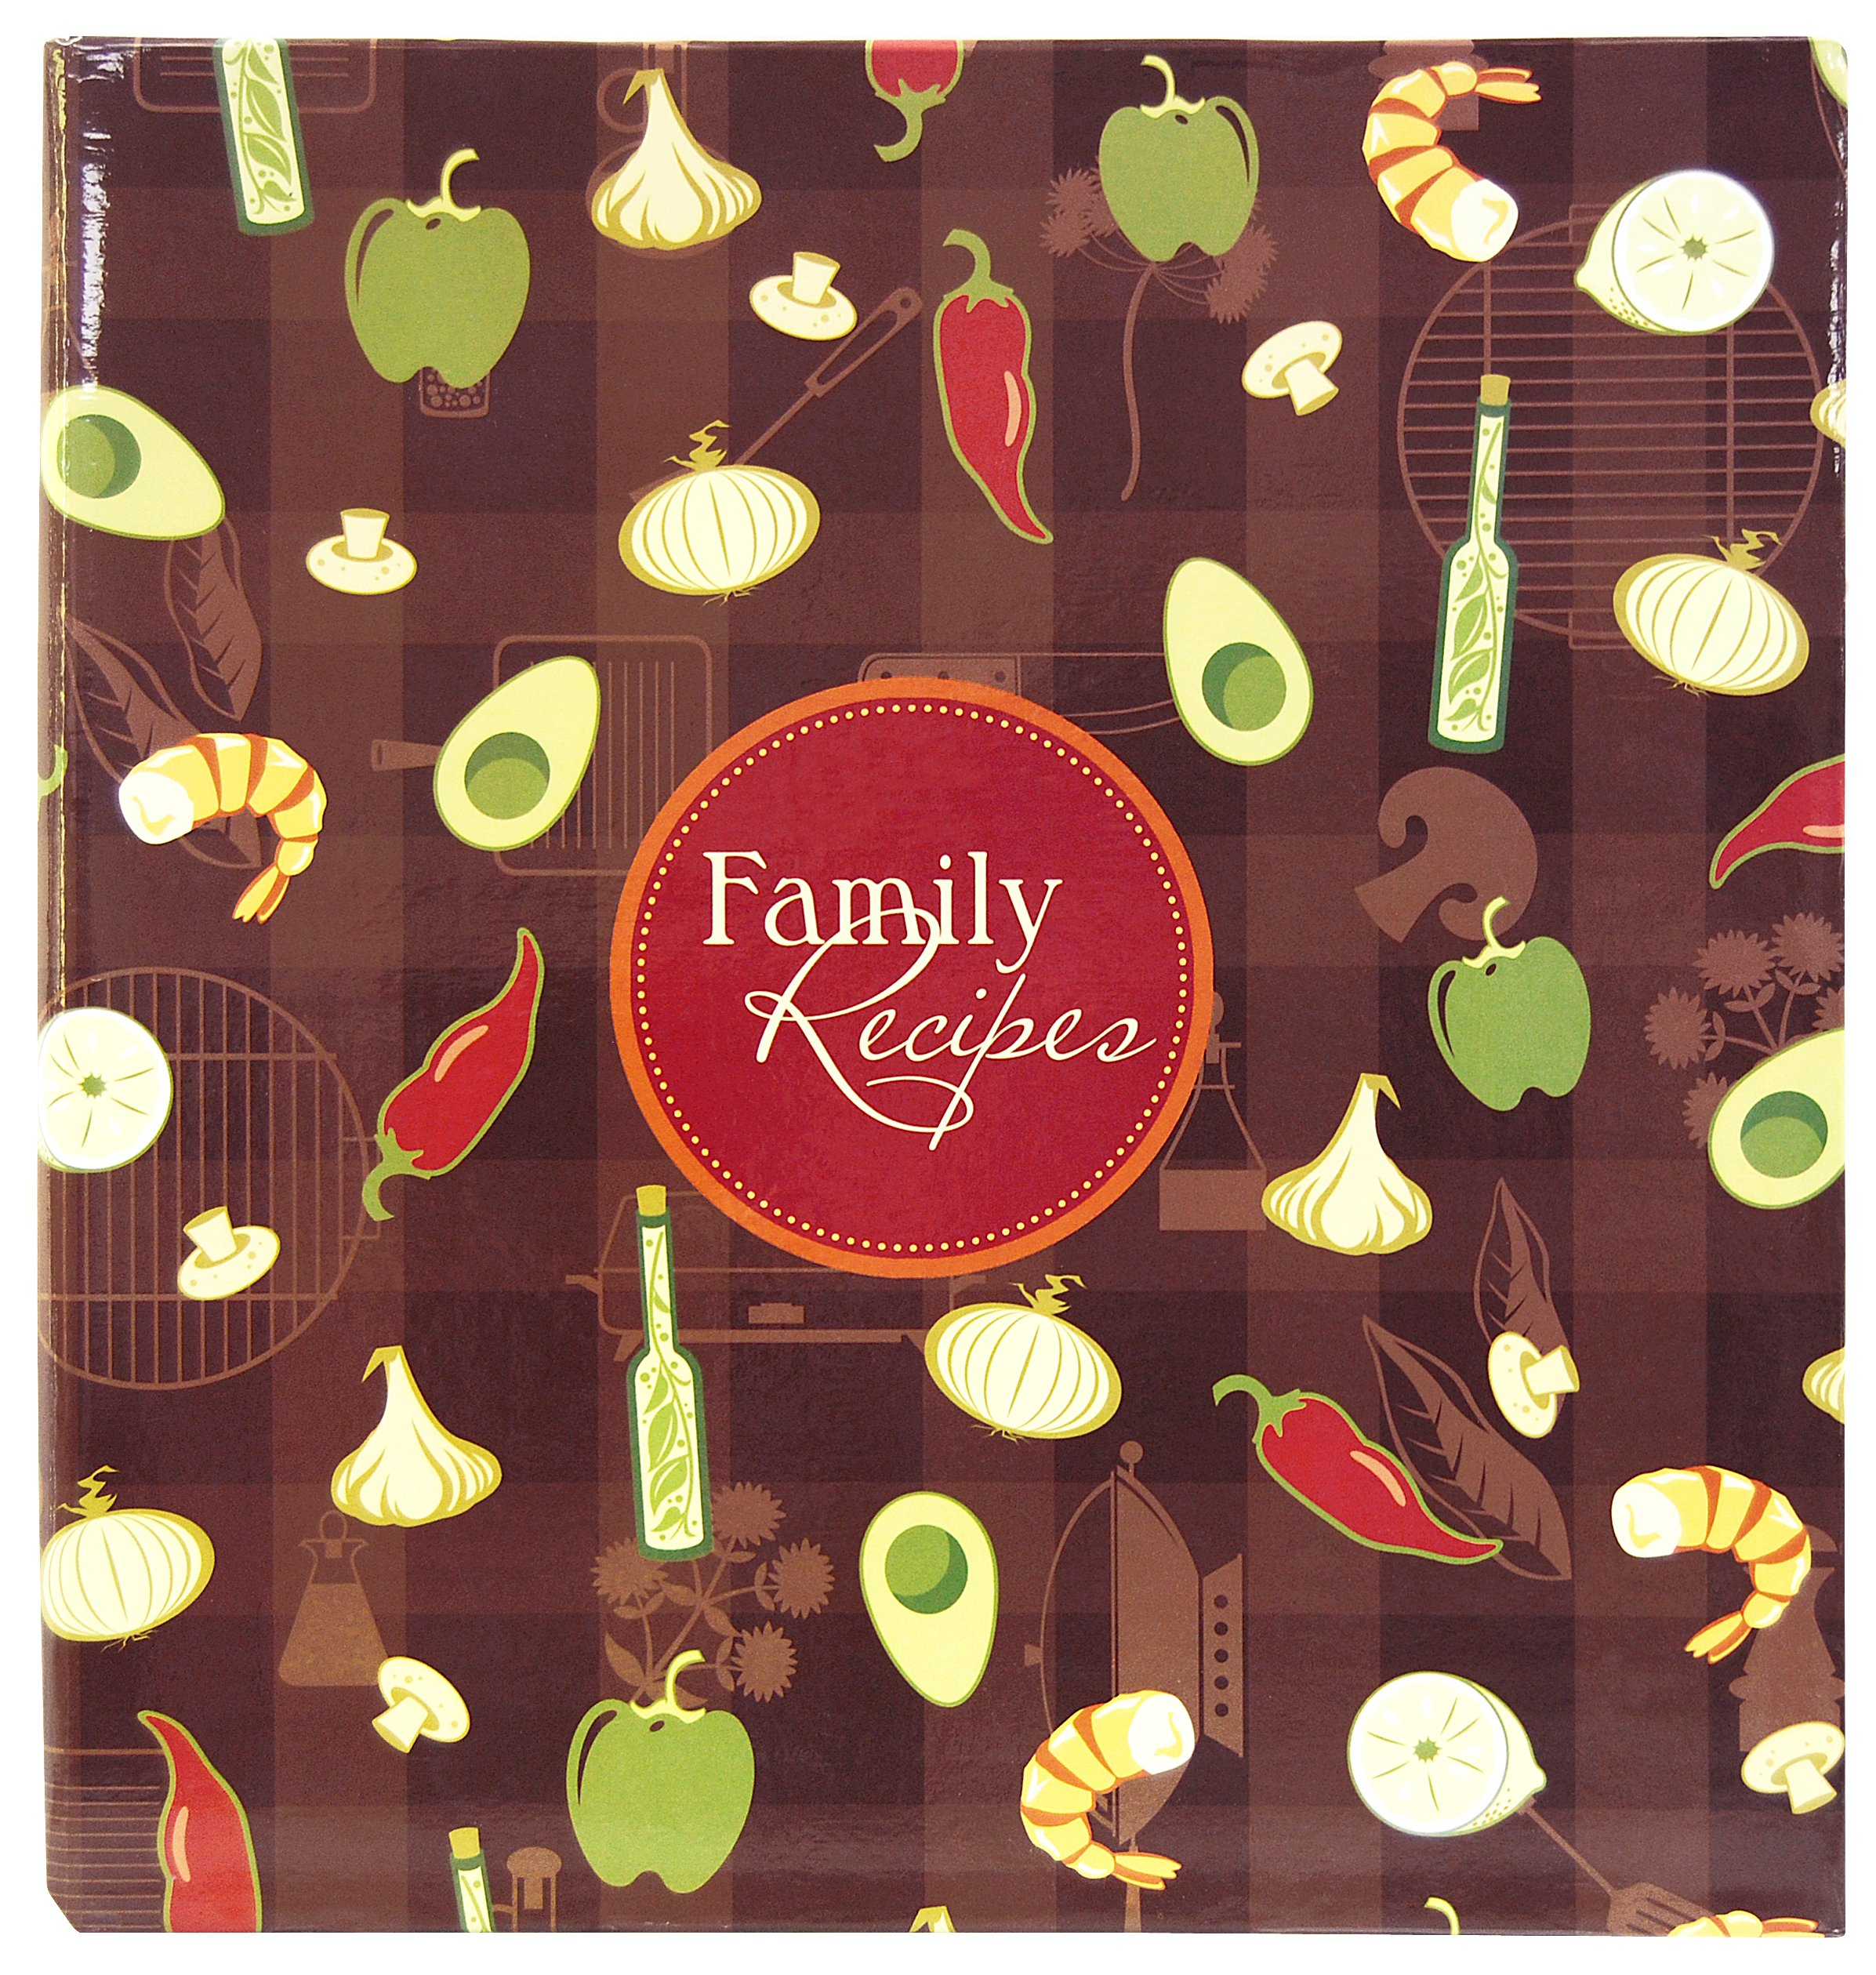 MCS MBI 3-Ring Bound Scrapbook Kit - Family Recipes (881850) by MCS